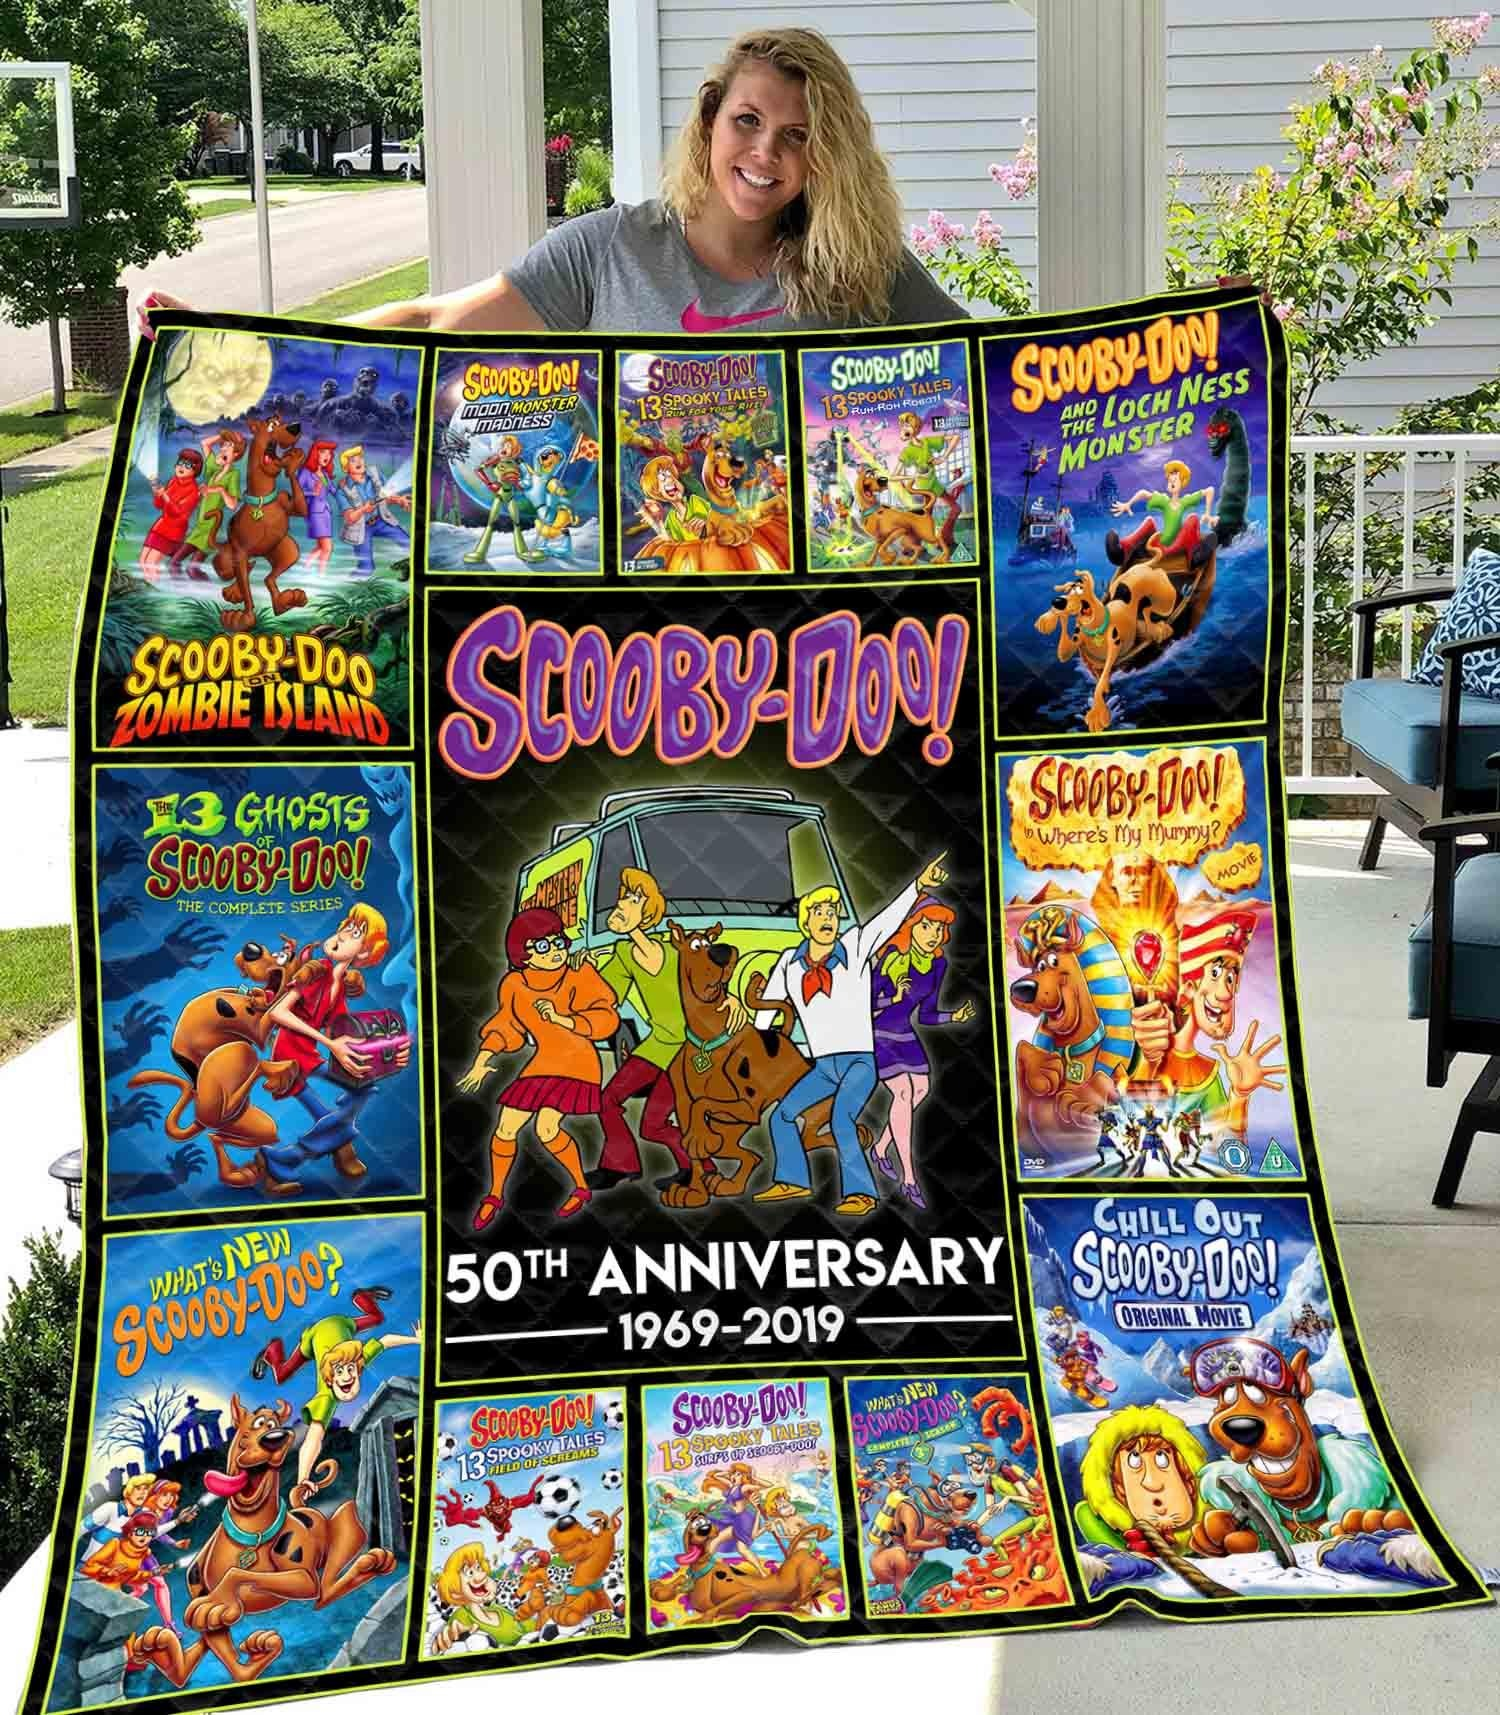 Scooby doo 50th anniversary quilt